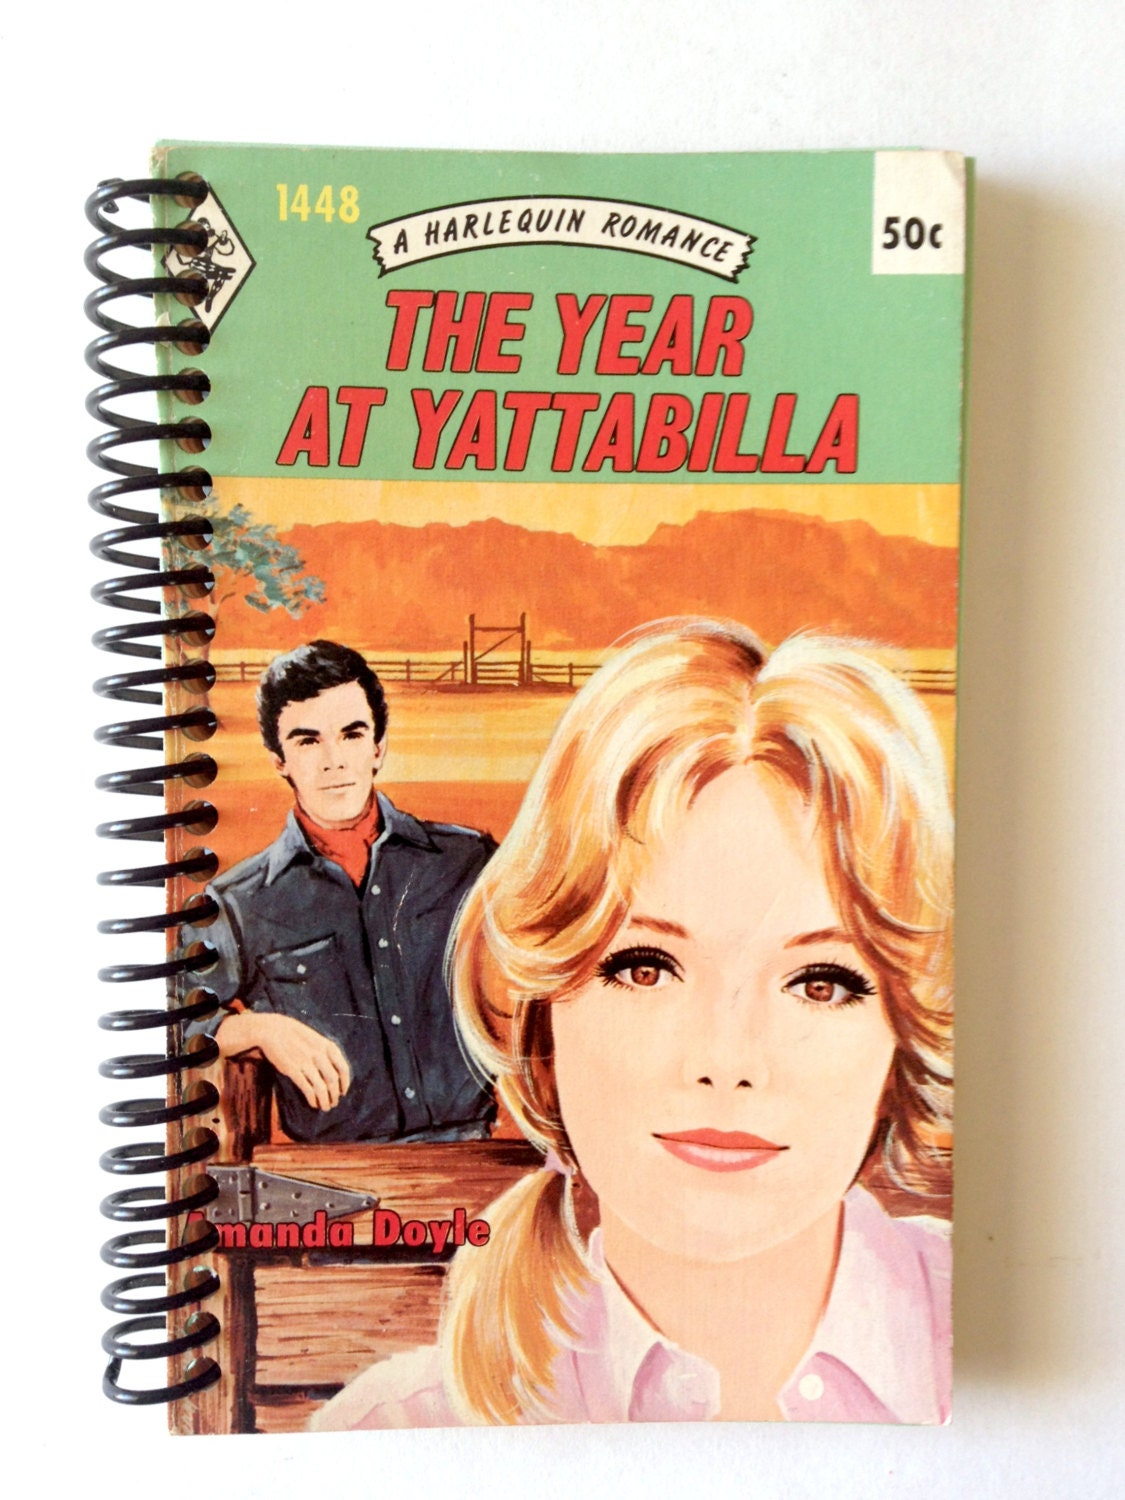 Harlequin Romance Book Cover : Vintage book cover blank journal harlequin romance